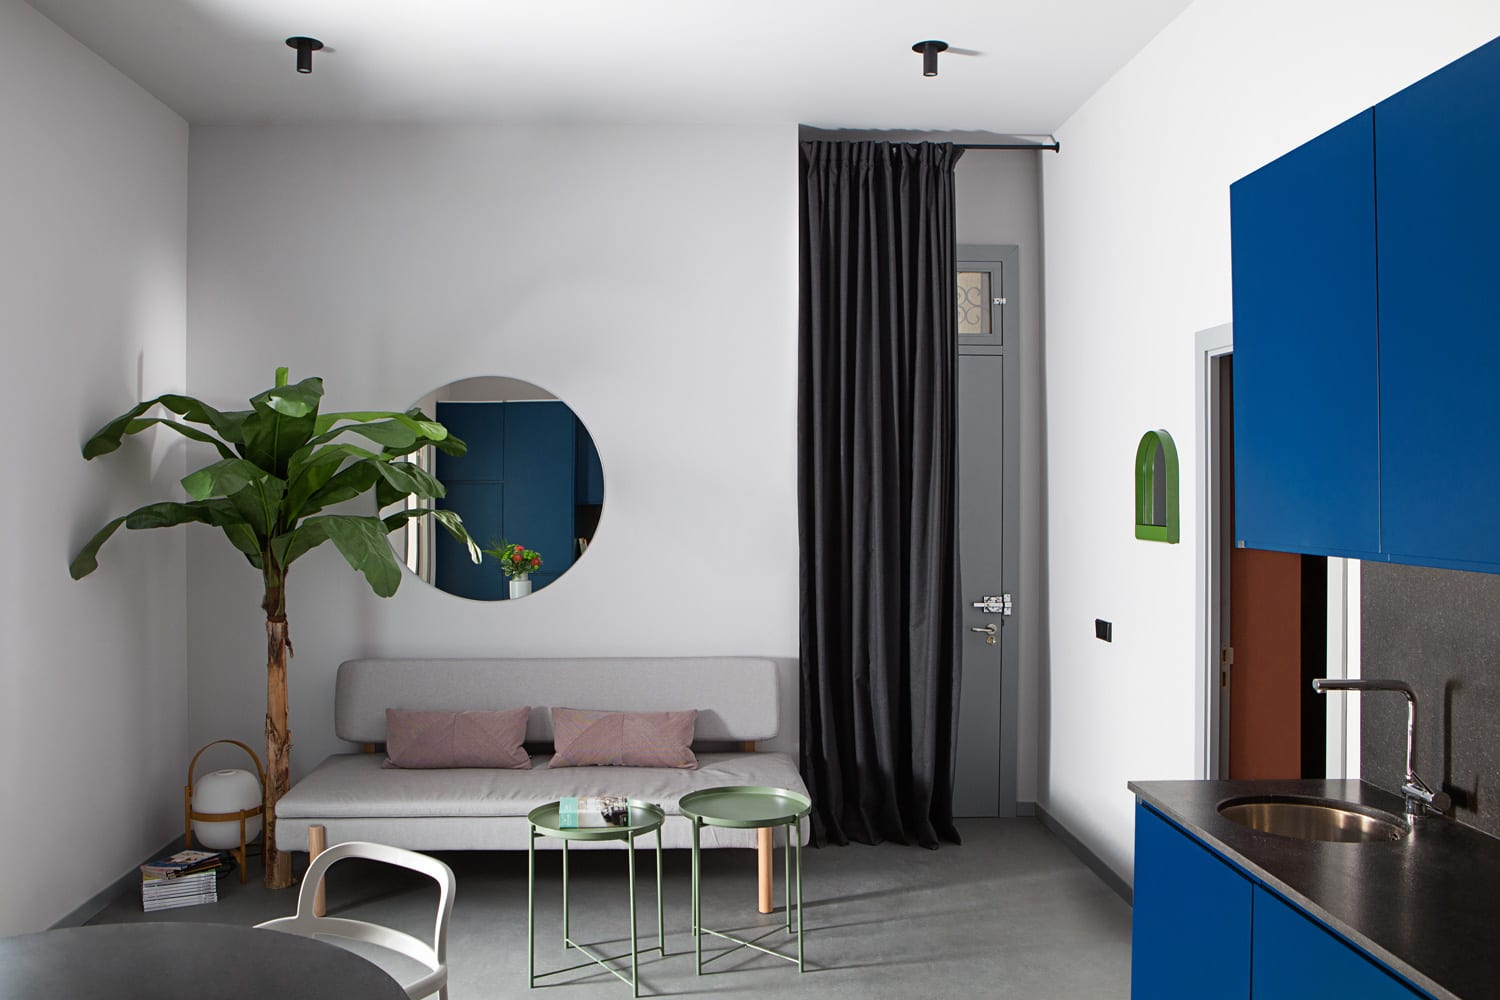 Student Housing Apartment Renovation in Madrid by Plutarco | Yellowtrace